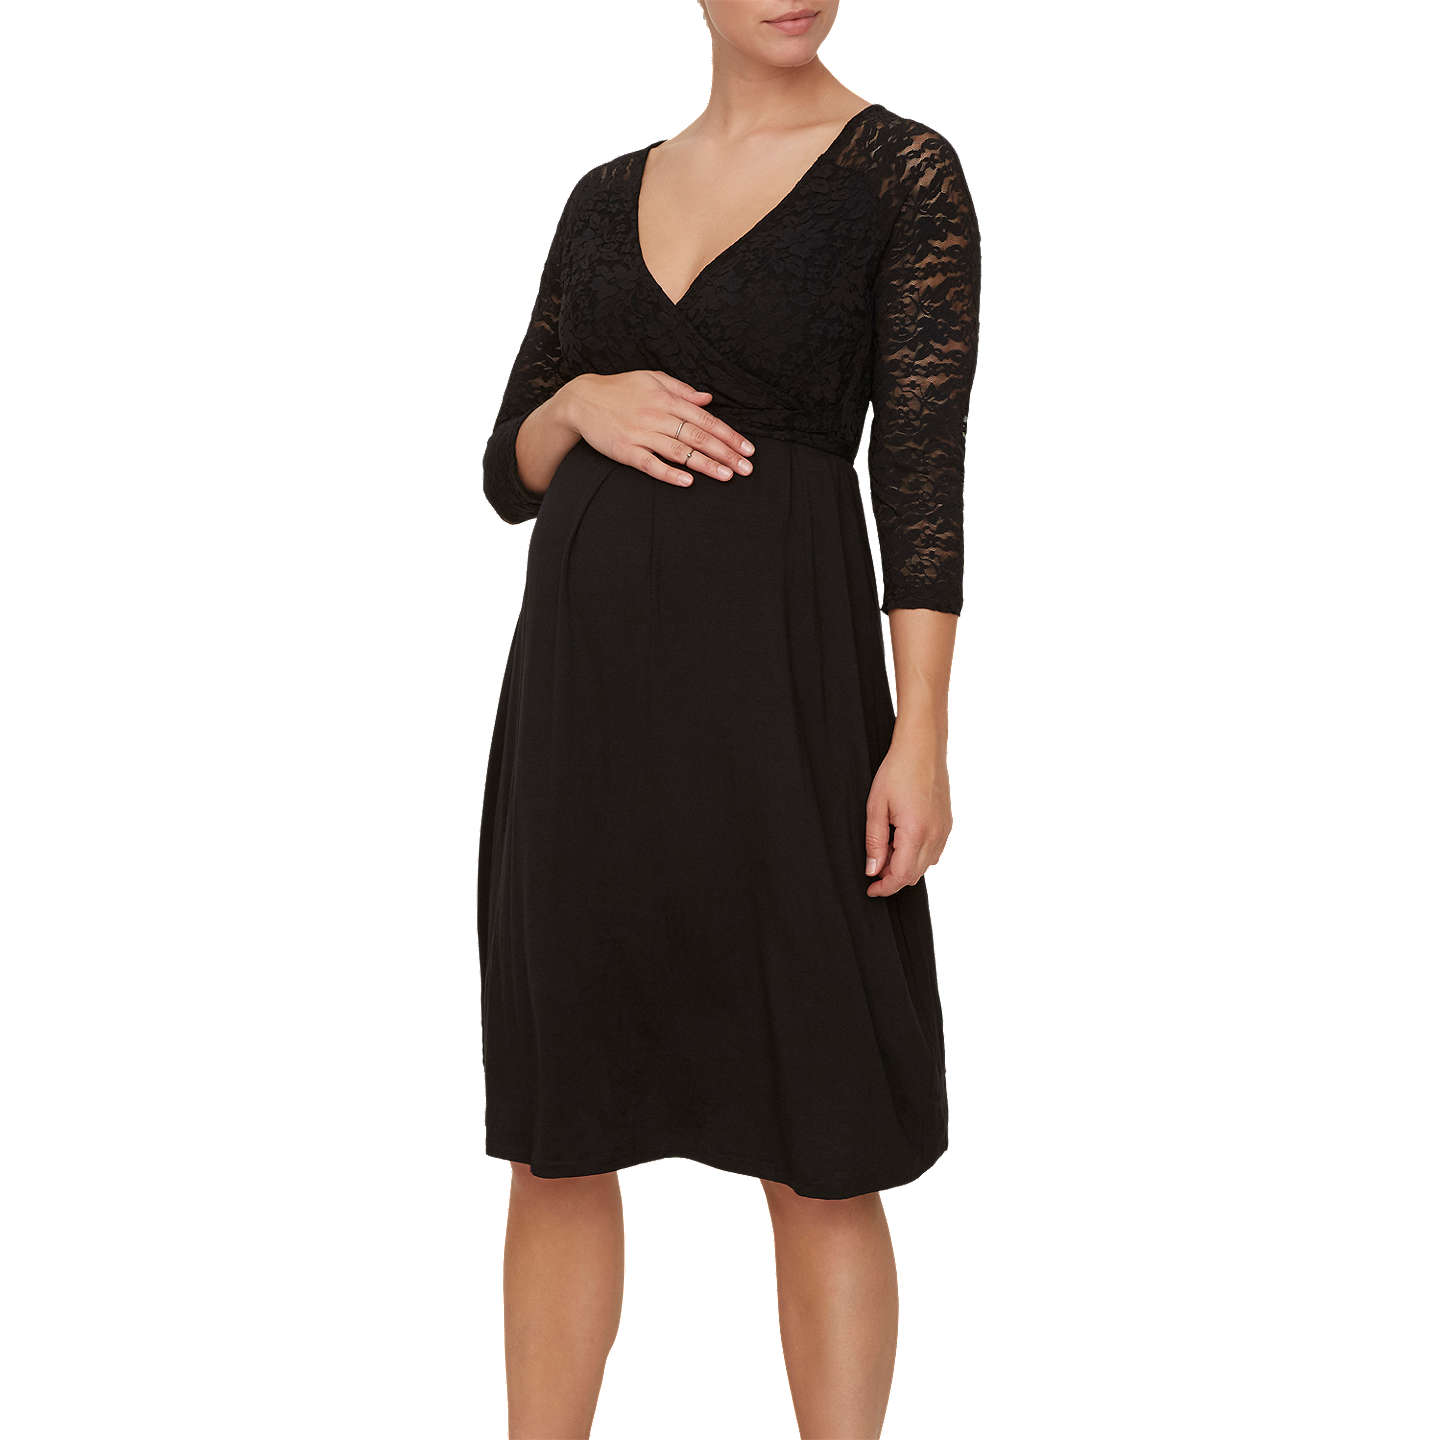 BuyMamalicious Winnie Lace Detail Jersey Maternity Dress, Black, M Online at johnlewis.com